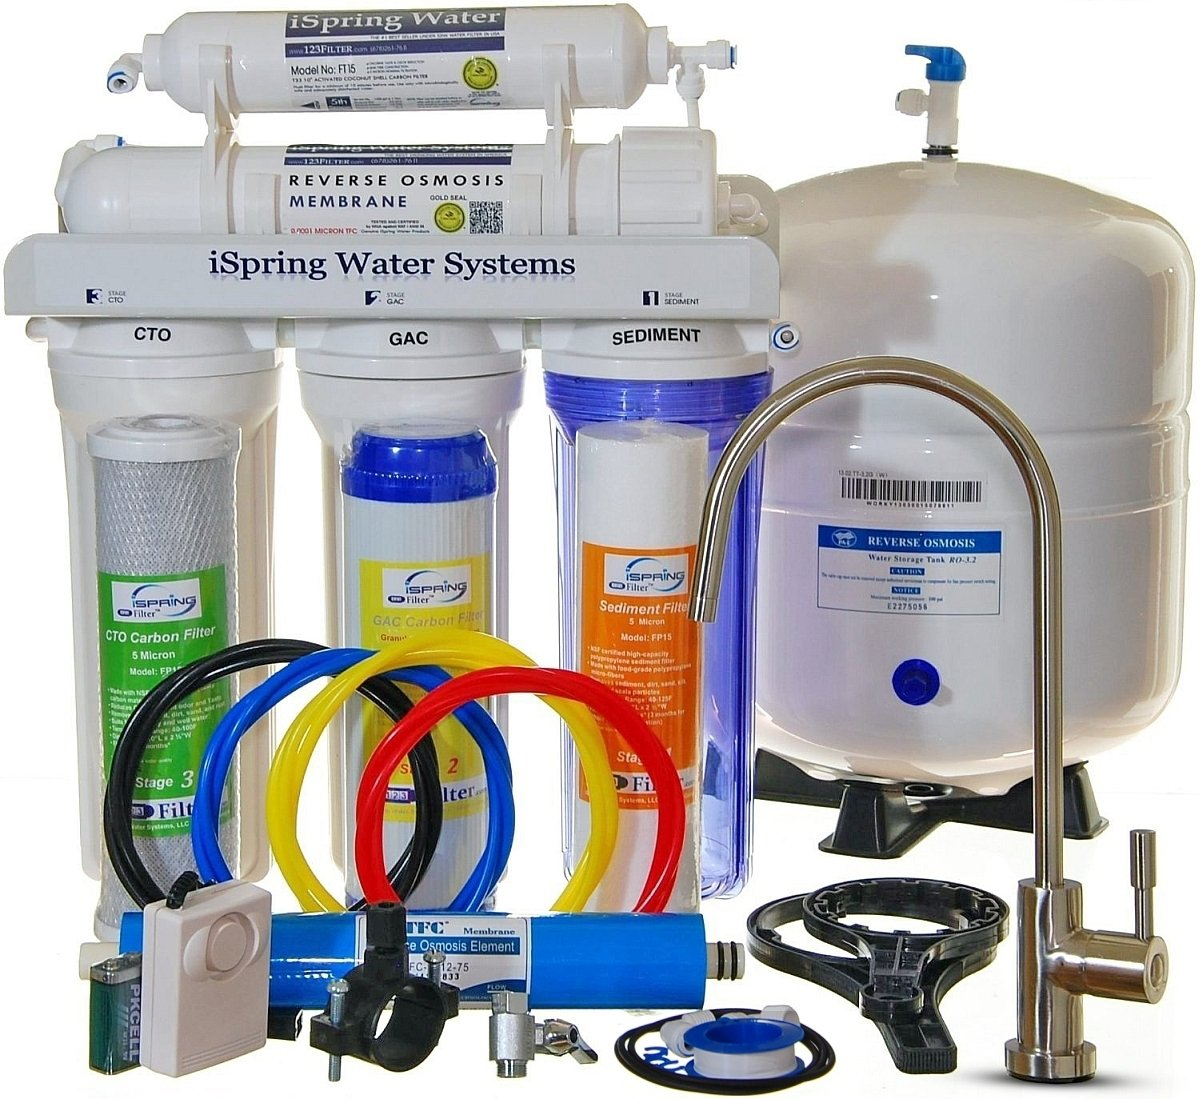 iSpring RCC7 - Built in USA, WQA Certified Reverse Osmosis 5-Stage 75GPD Under-Sink Water Filter